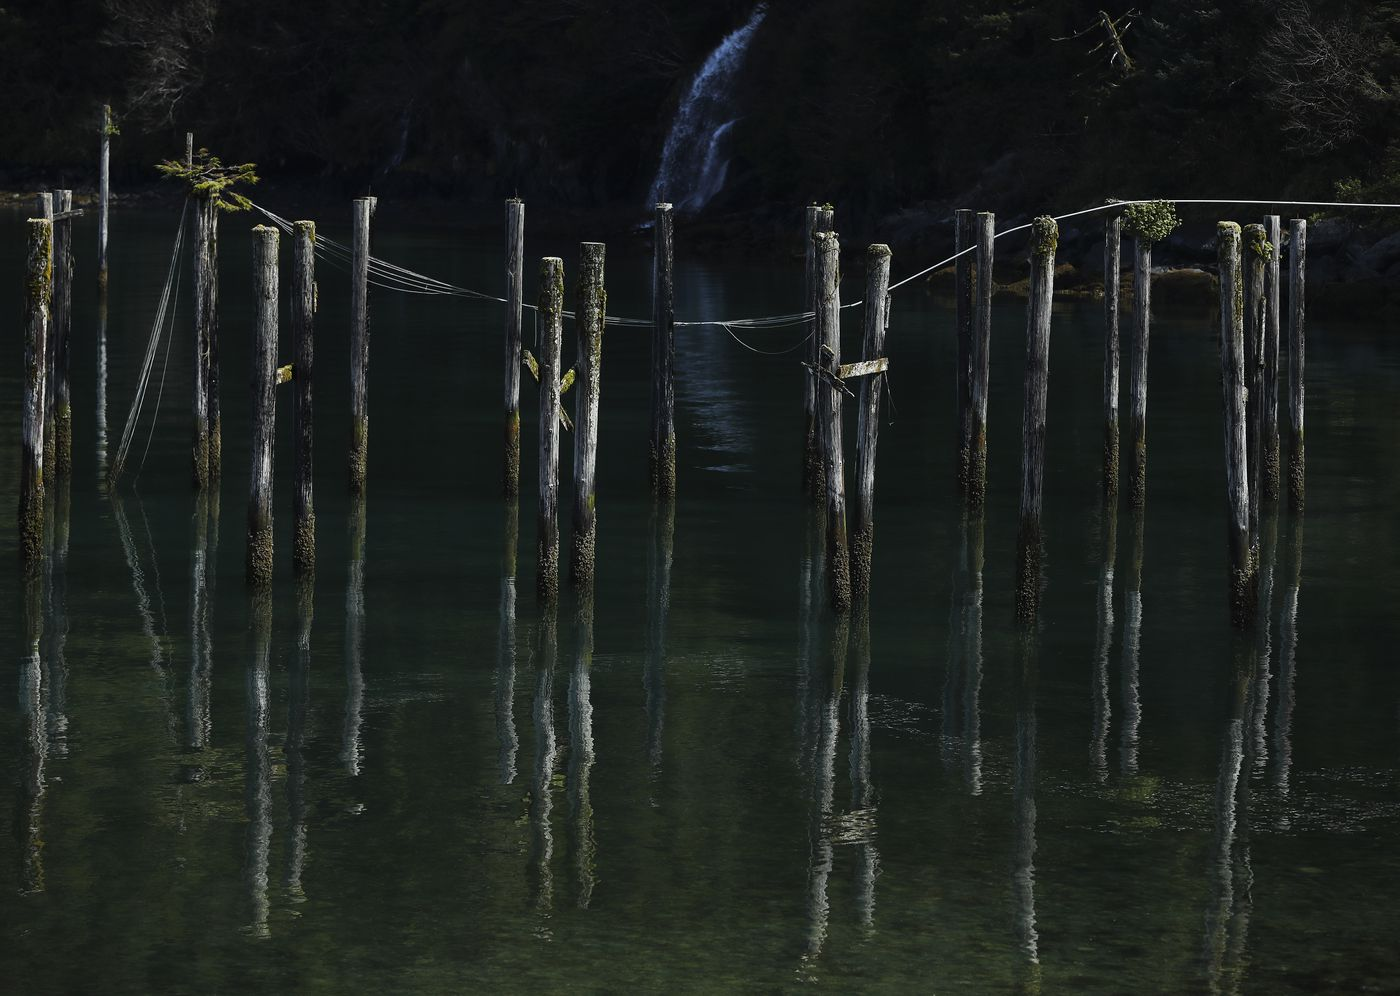 Moss-covered pilings rest in shallow water on the shore of Orca Inlet in Cordova on Saturday, May 22, 2021. (Emily Mesner / ADN)